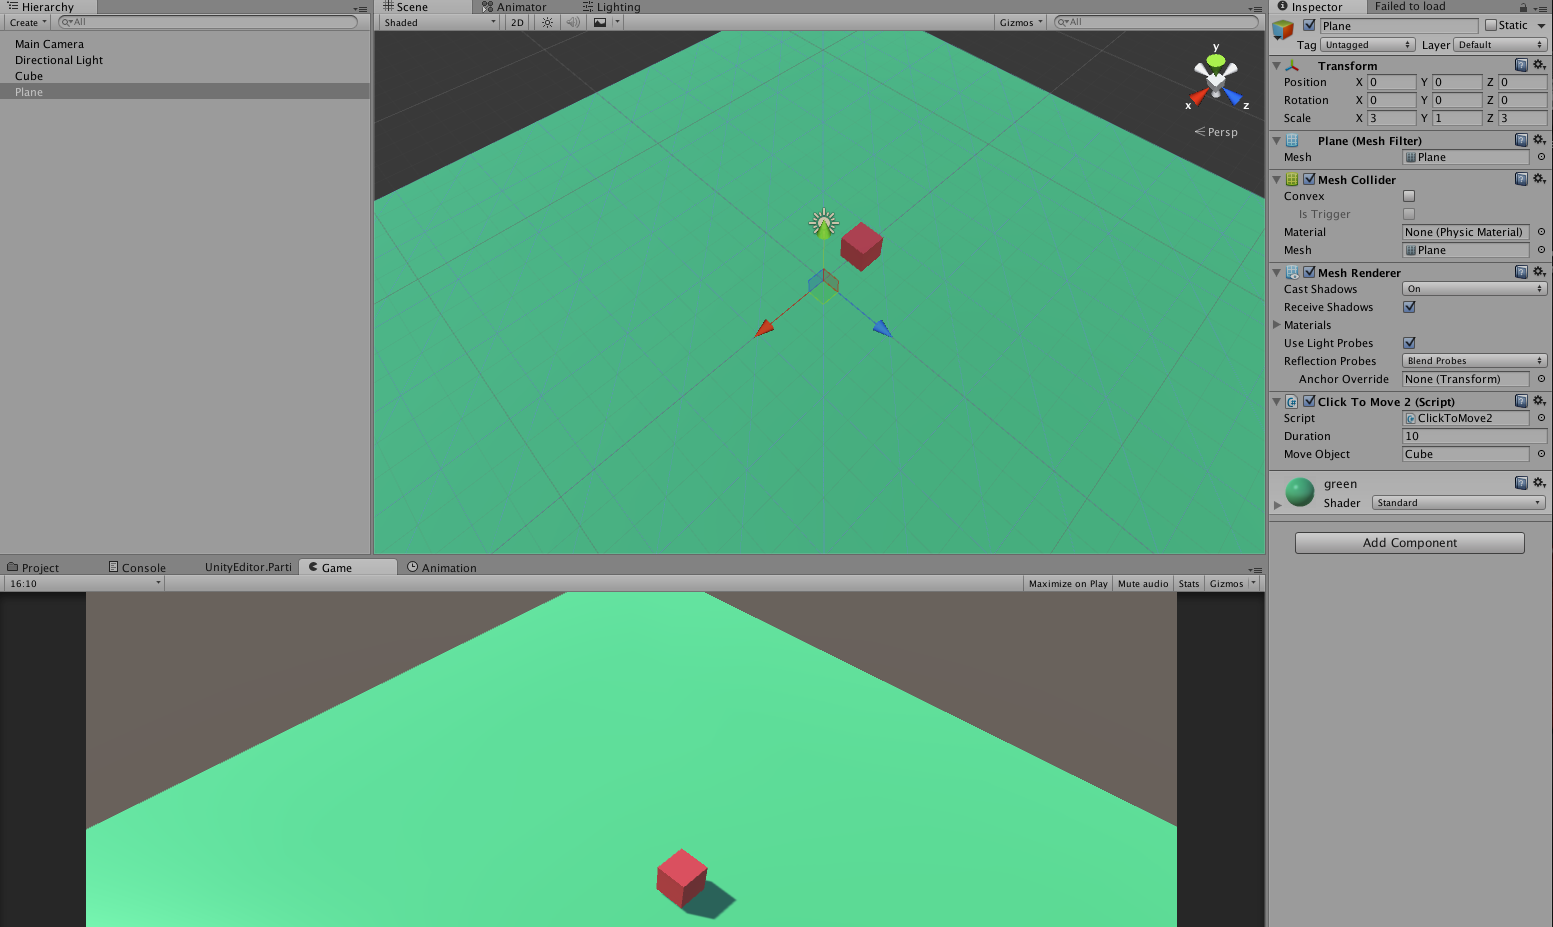 UNITY 3D Tutorials: click to move 3d object using lerp unity c#